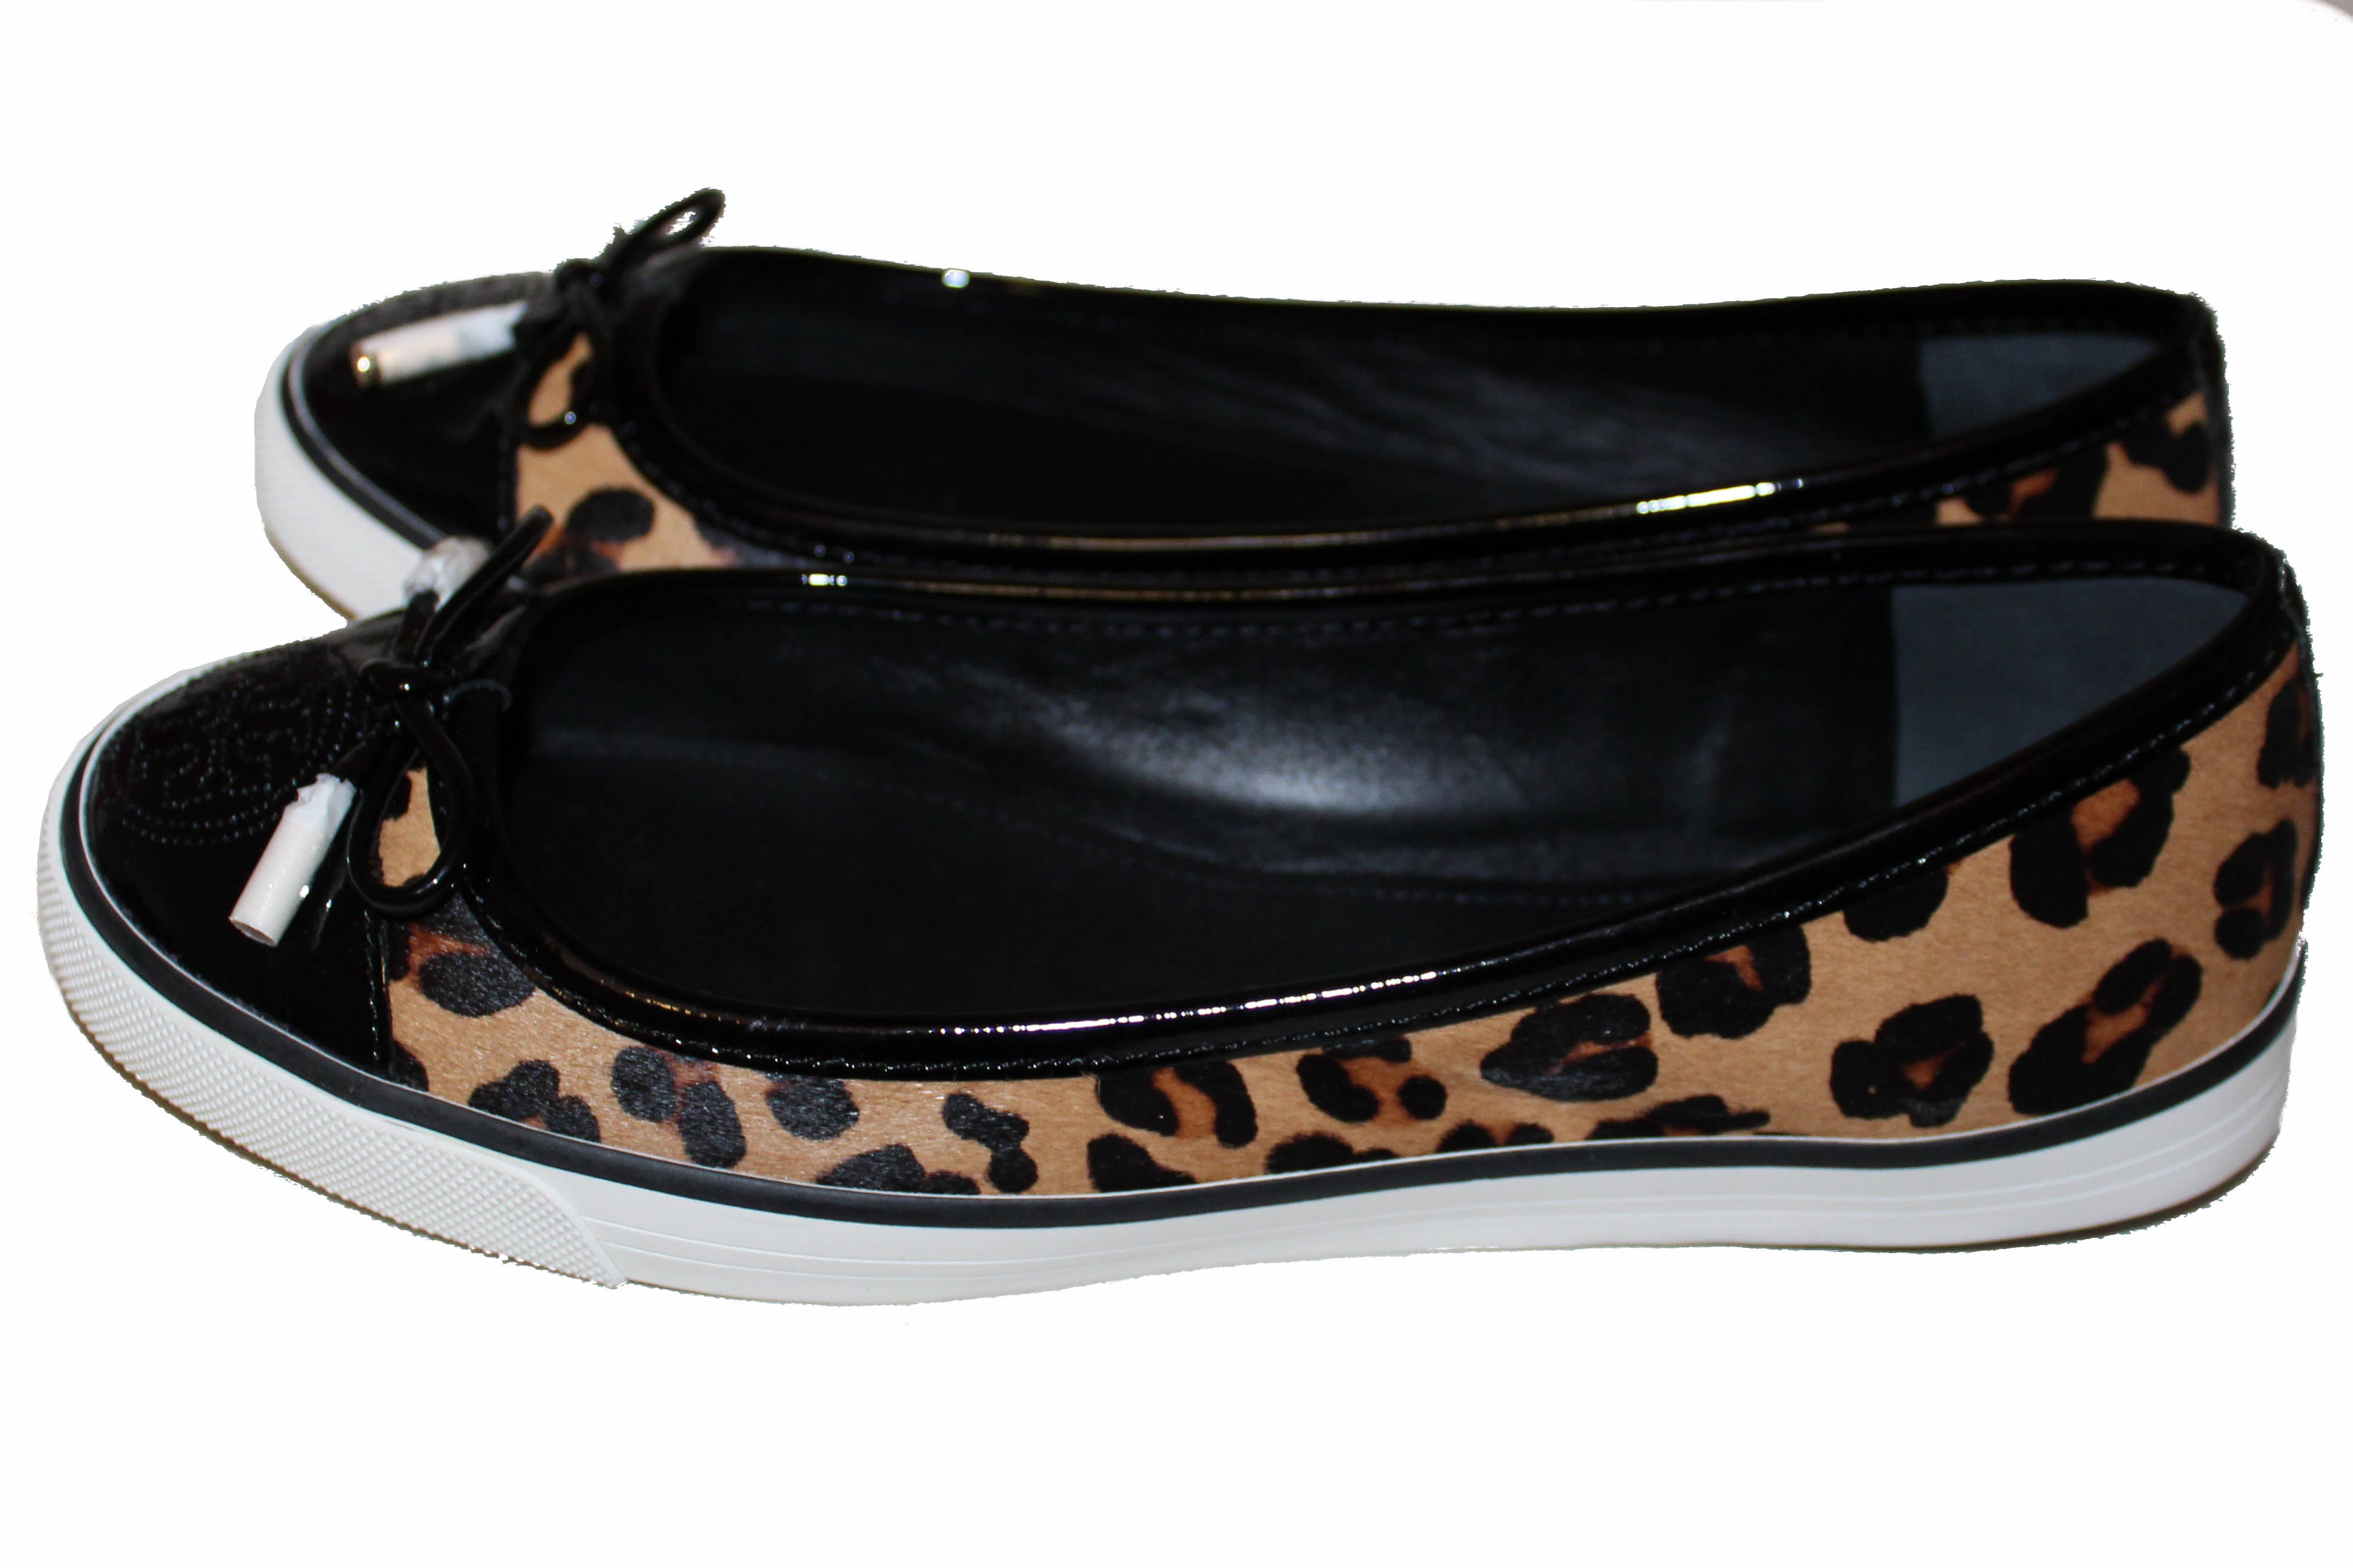 Authentic NEW Tory Burch Leopard Print Flat Shoes Size 6.5